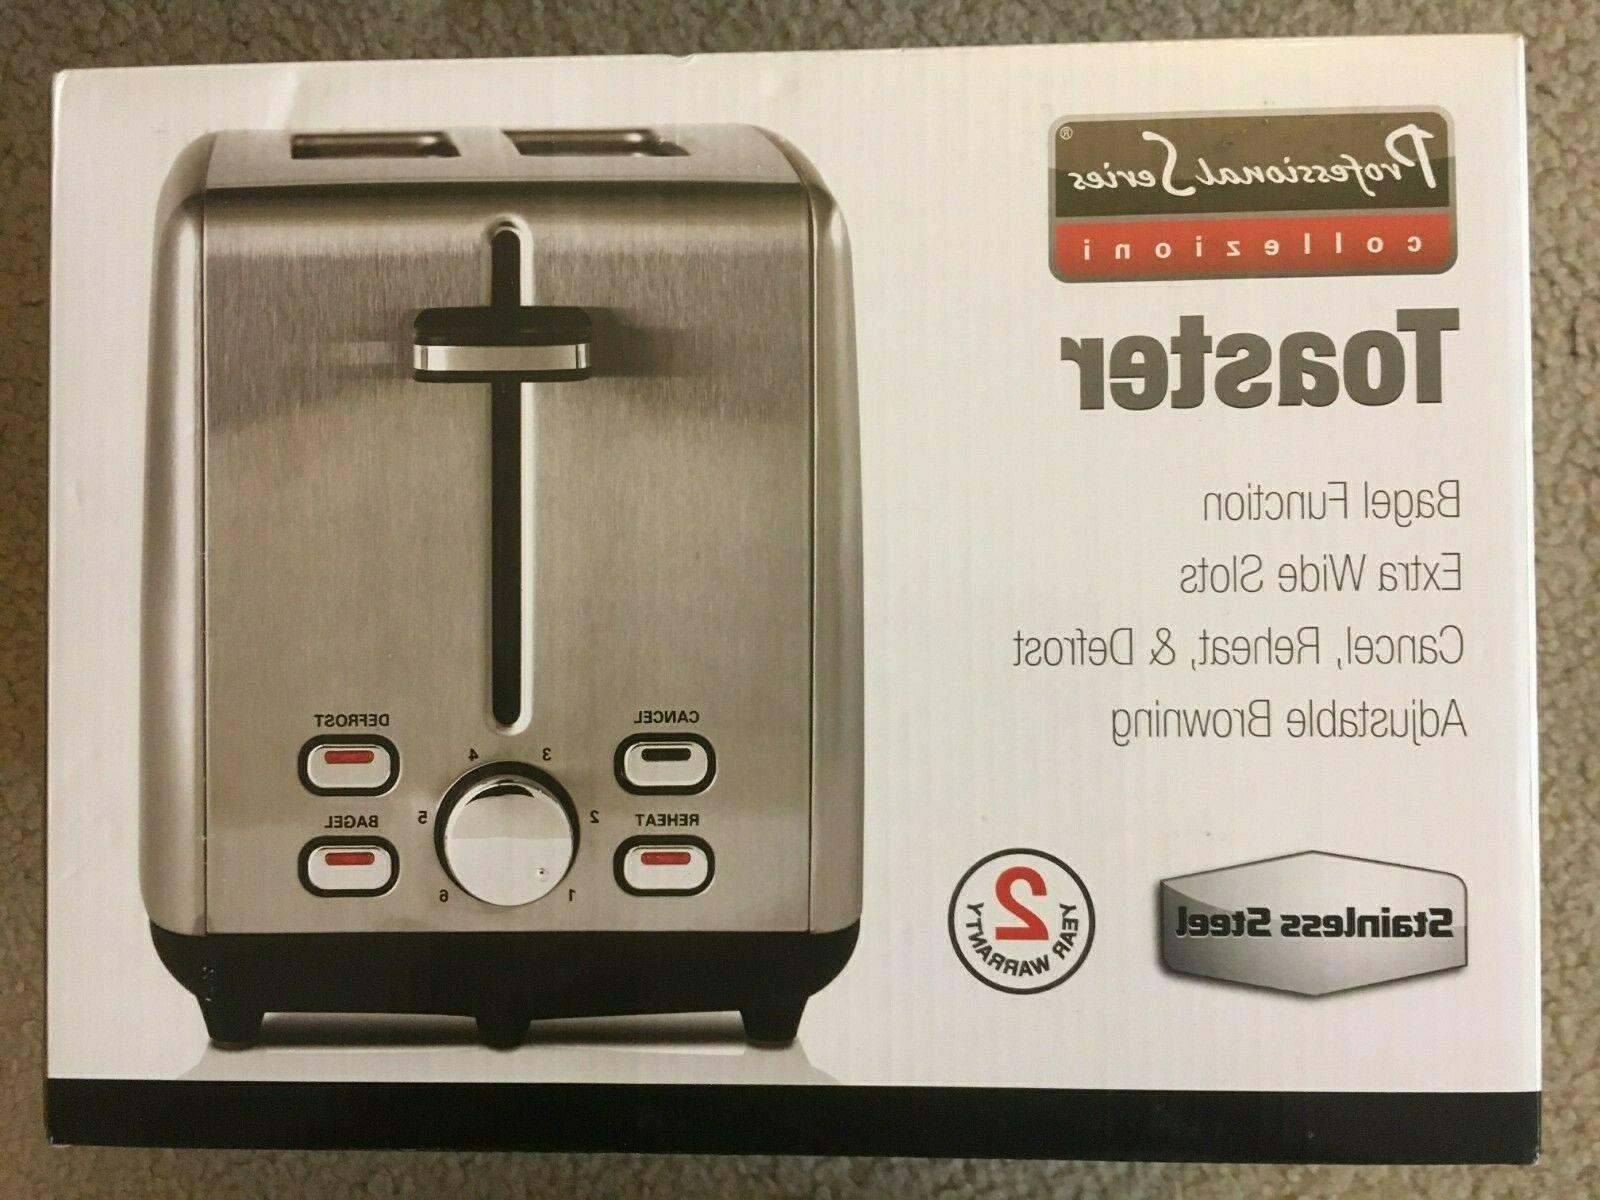 stainless 2 slice toaster wide slots multifunction